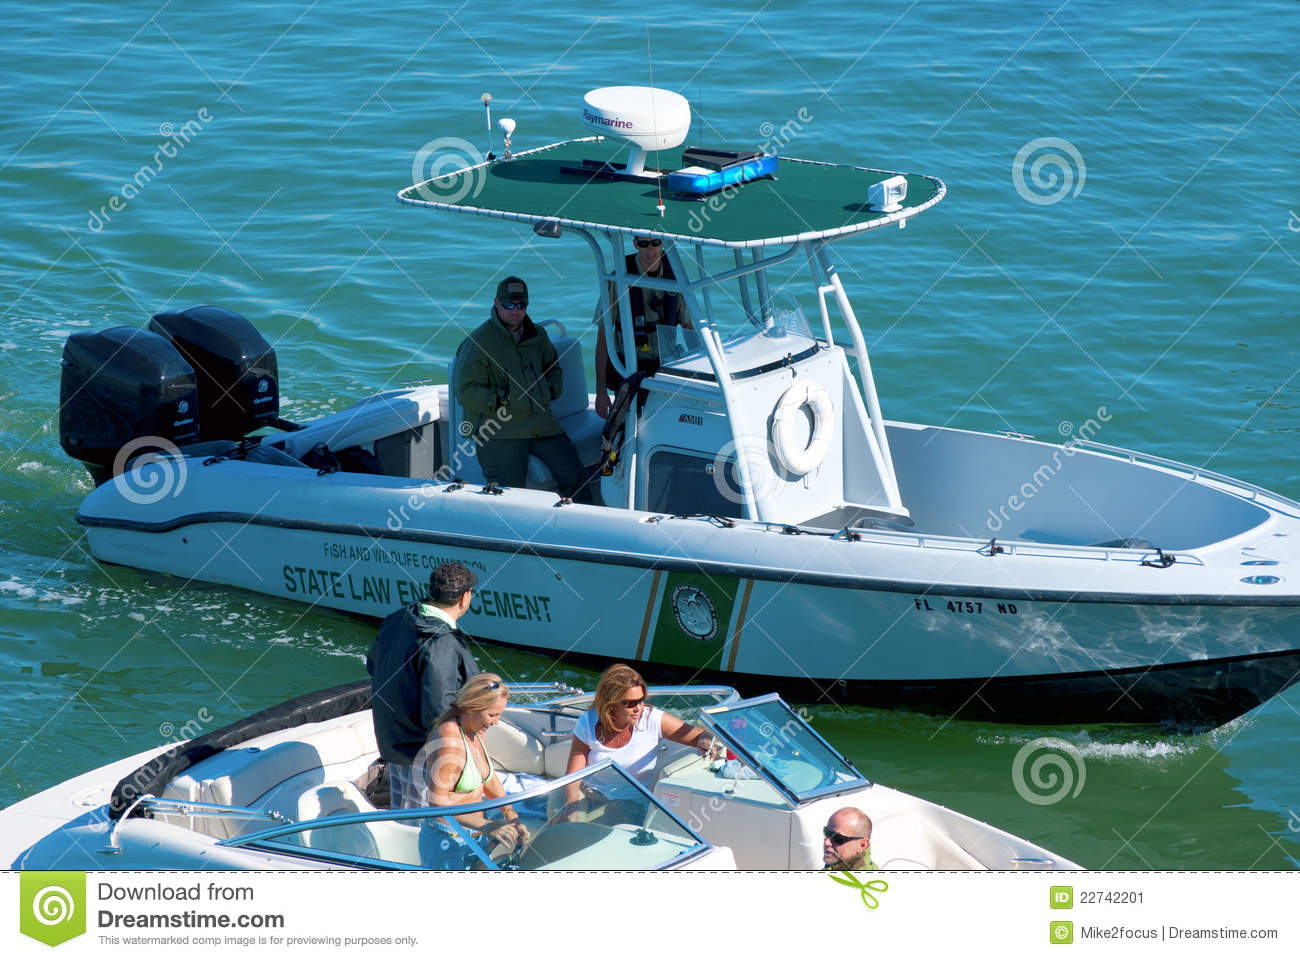 State Law Enforcement Police Boat Stopping A Boat Editorial Photo.